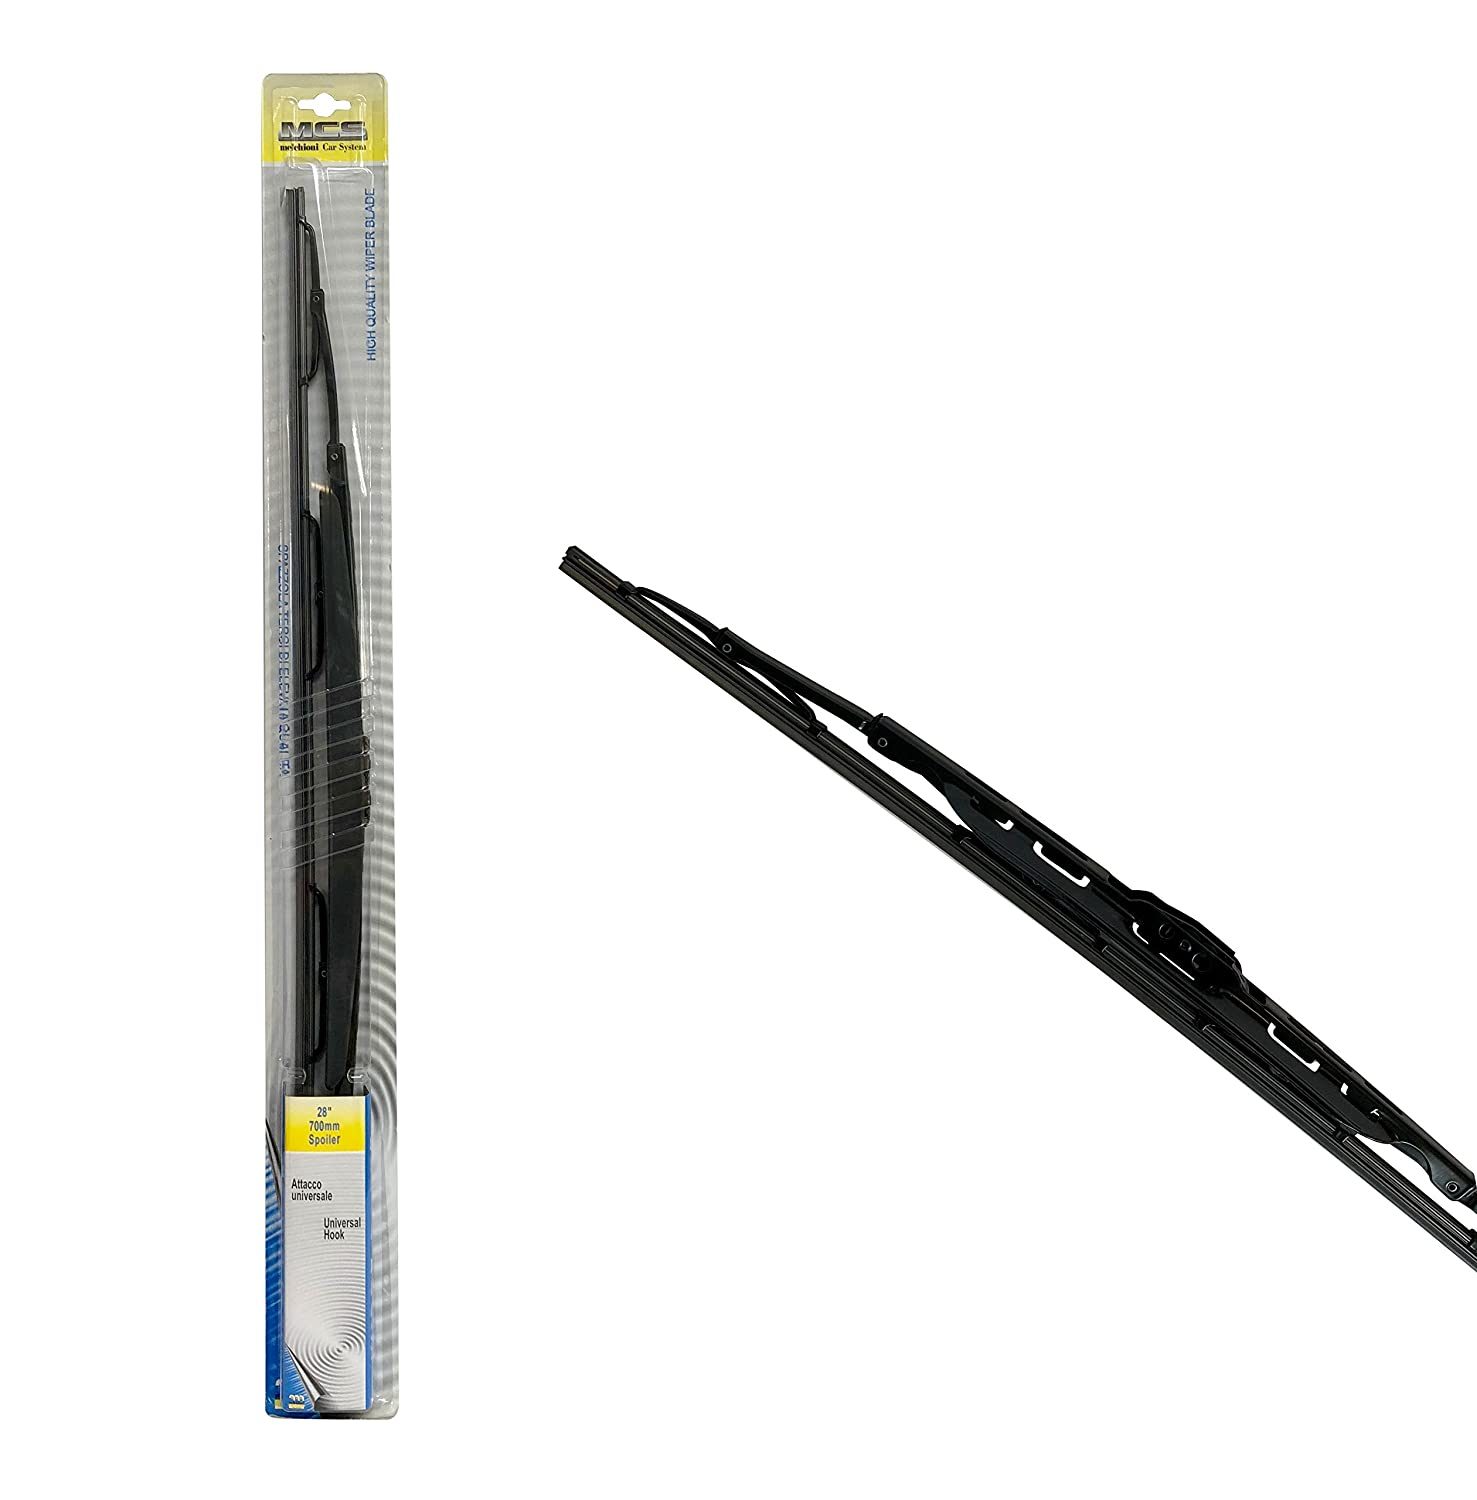 700/ mm Melchioni 360003008/ Wiper Blade with Spoiler \ 28